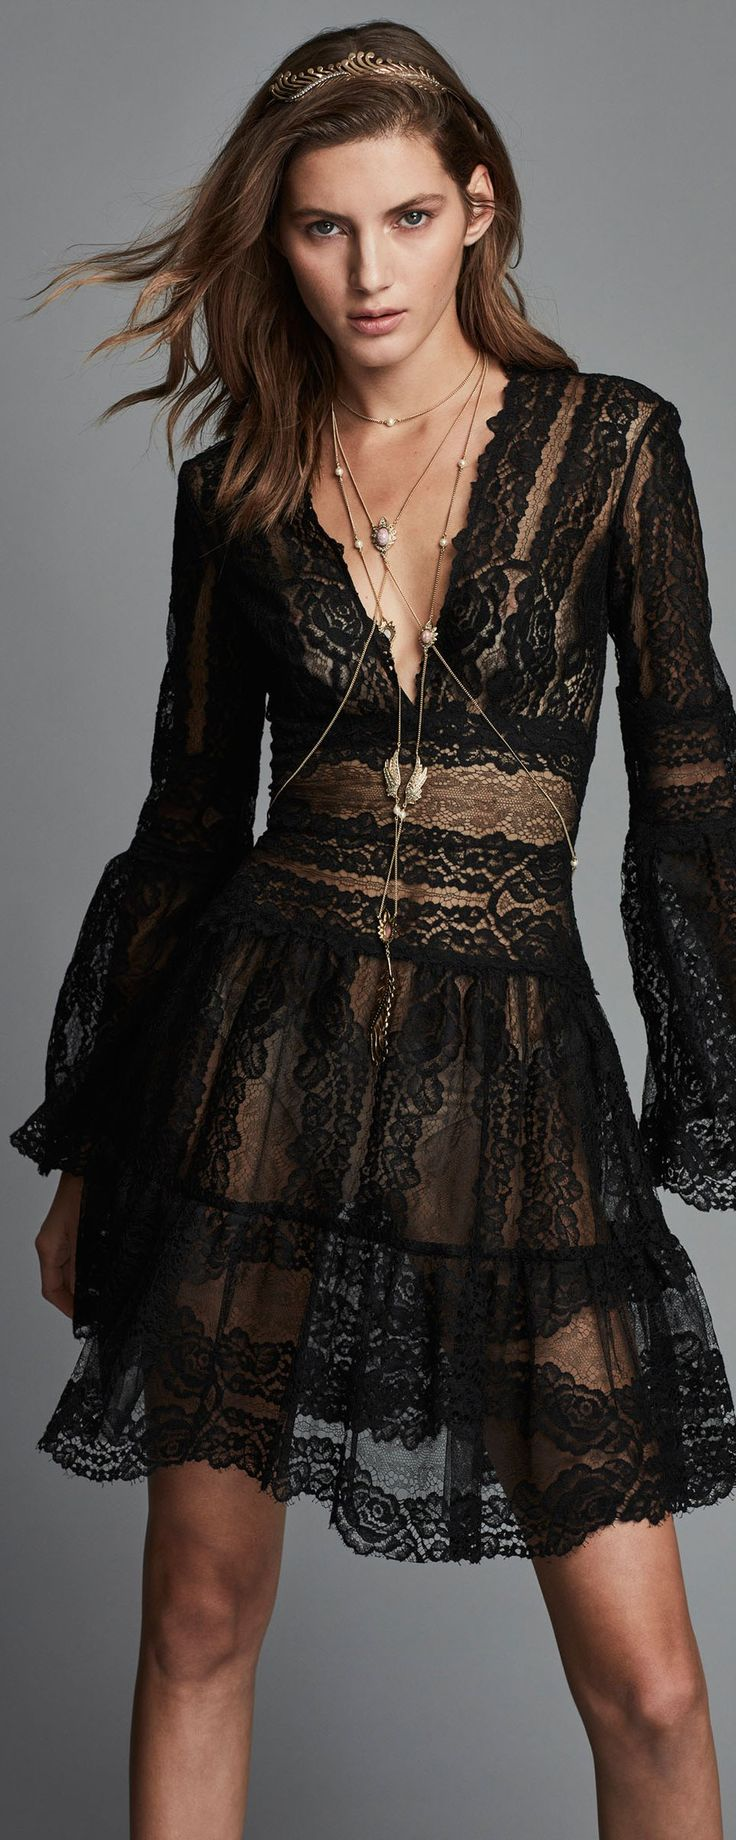 3797 Best Couture Images On Pinterest Sewing Projects Blouse And Magnolia Lace Top Wanita Putih Zuhair Murad Printemps T 2018 Prt Porter